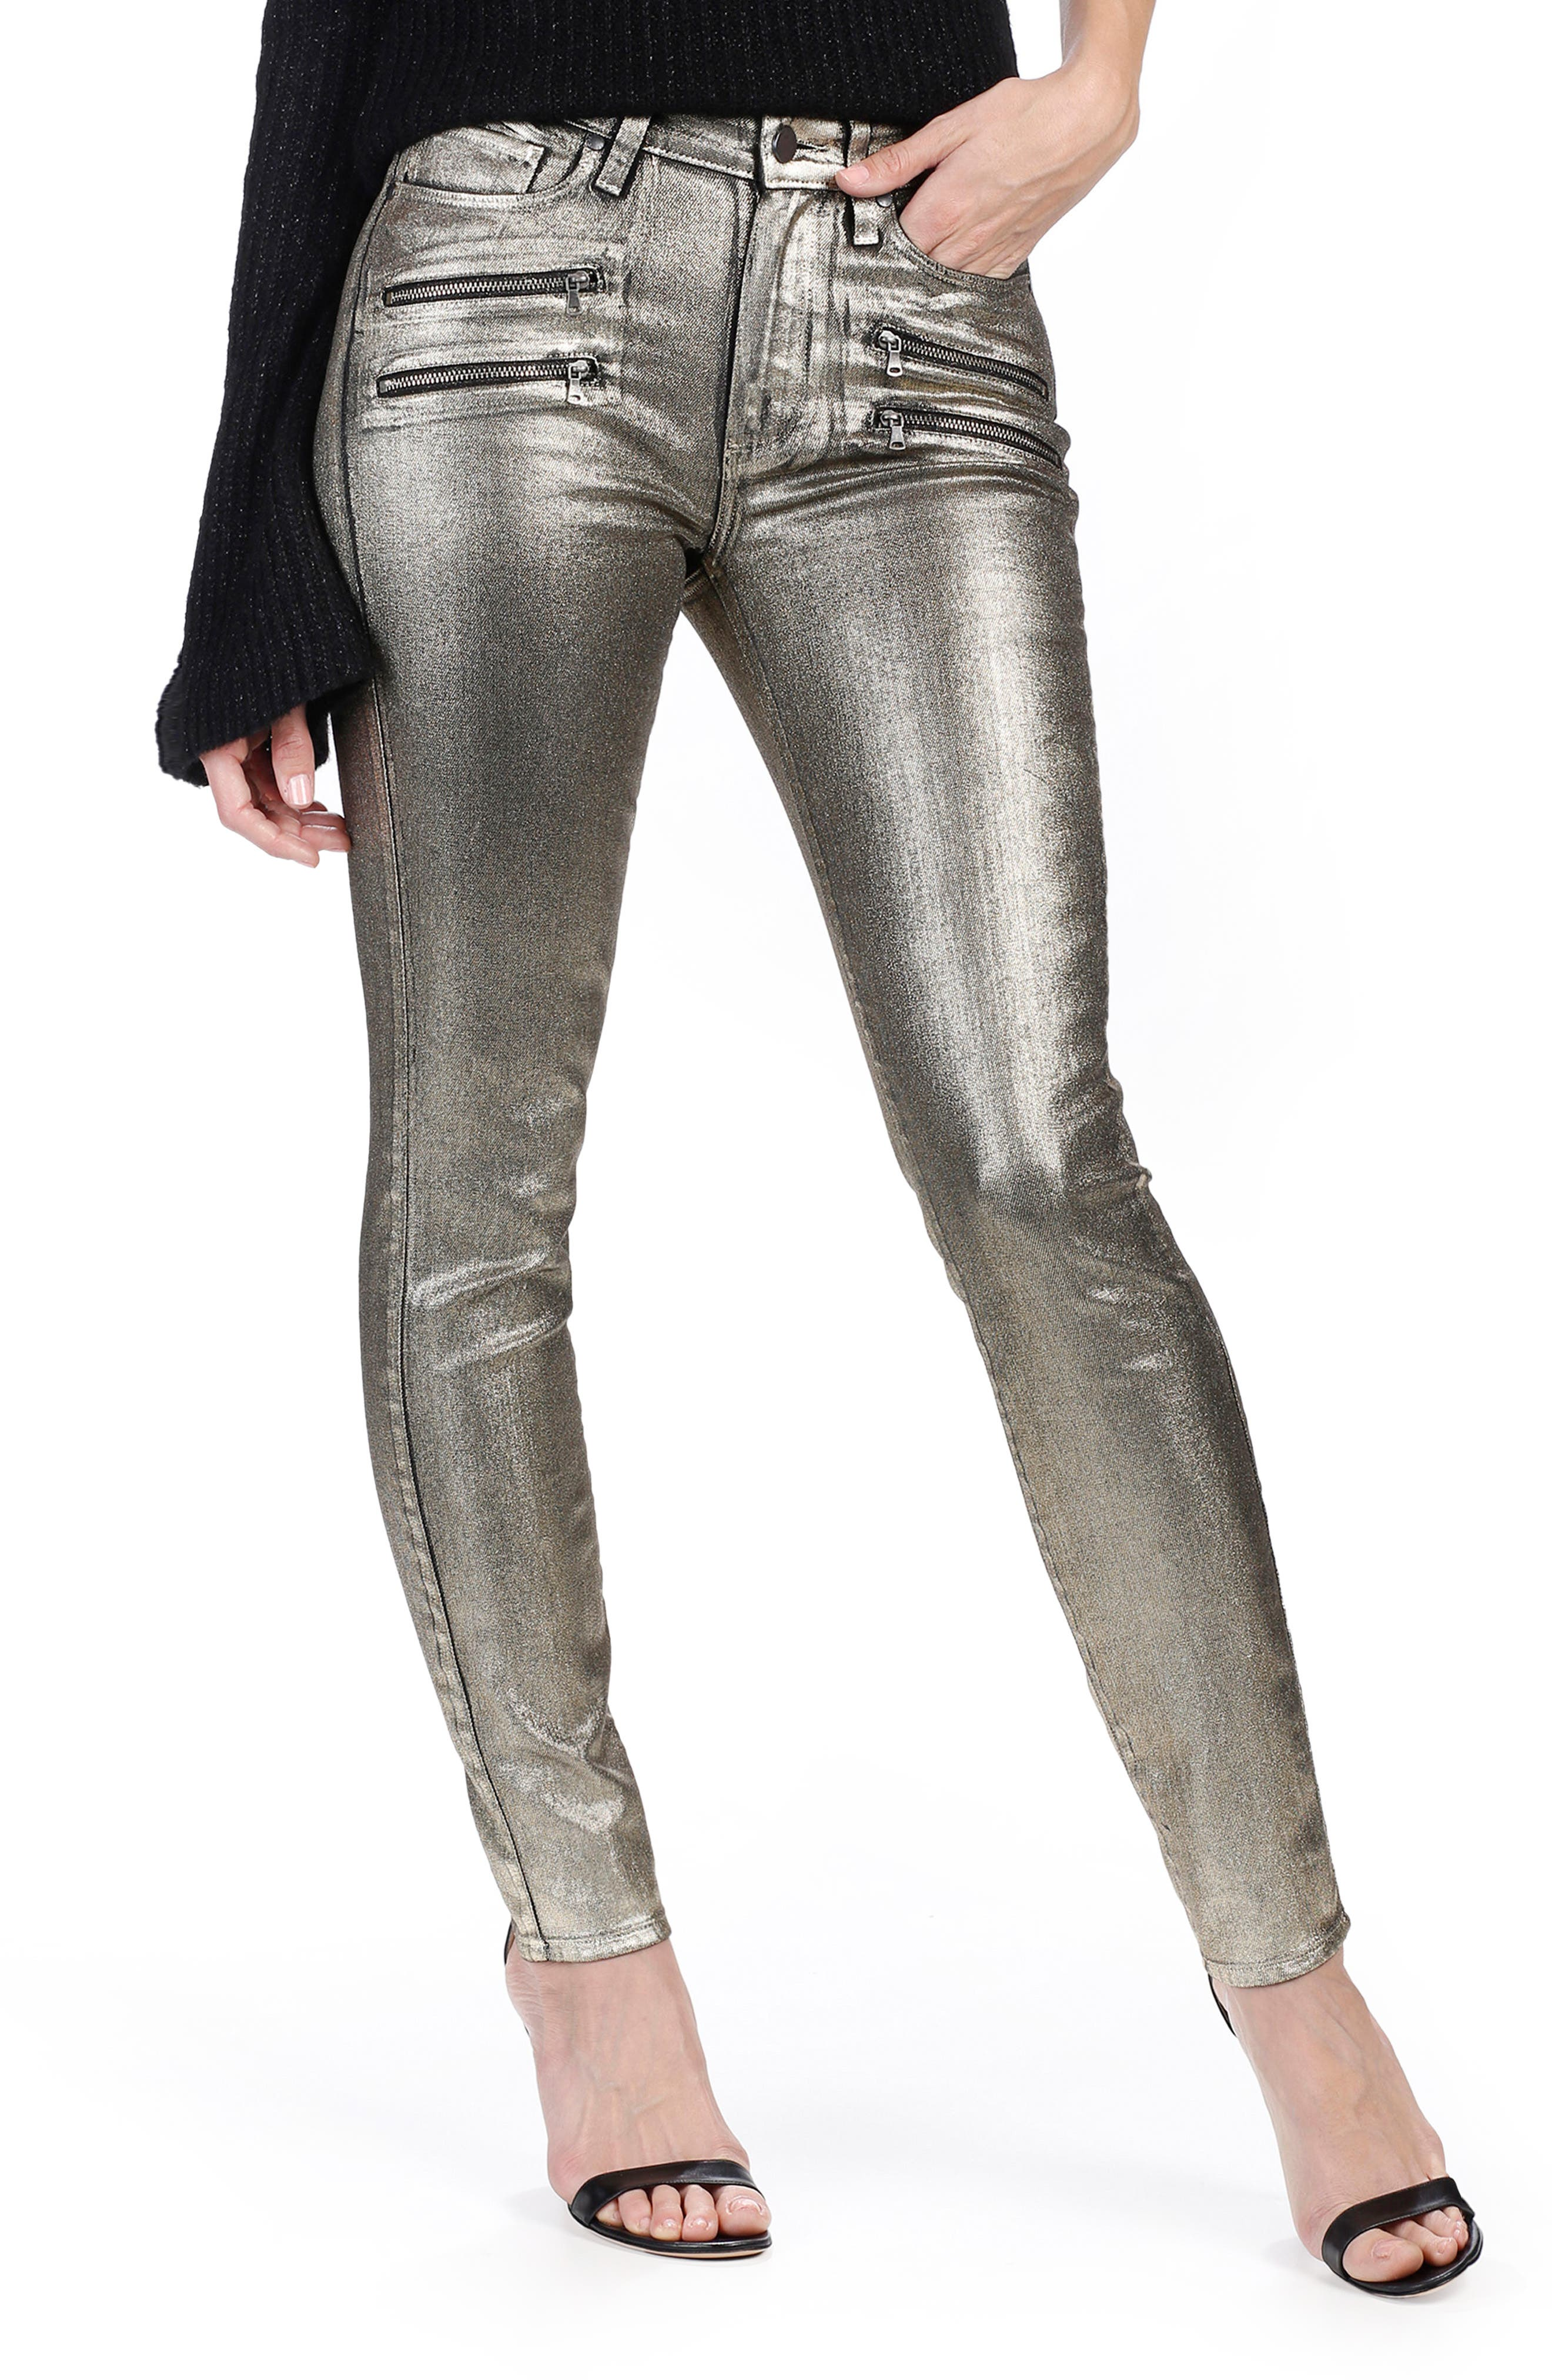 Rosie HW x PAIGE Stevie High Waist Skinny Jeans,                         Main,                         color, Gold Galaxy Coating